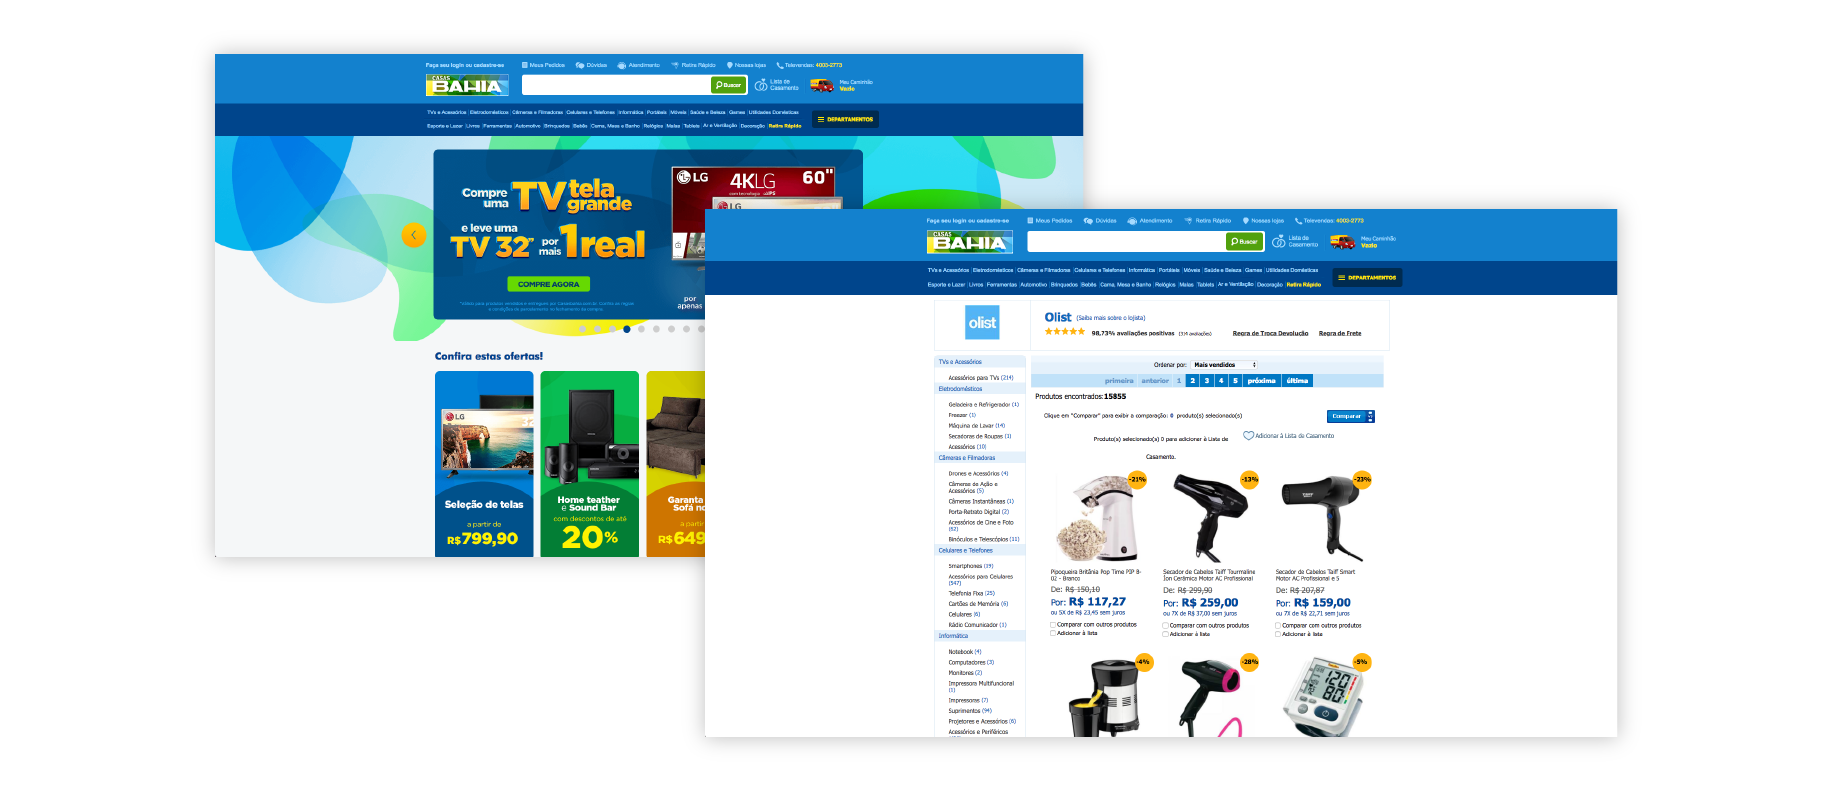 banners-site-marketplaces-casasbahia_Screenshots.png